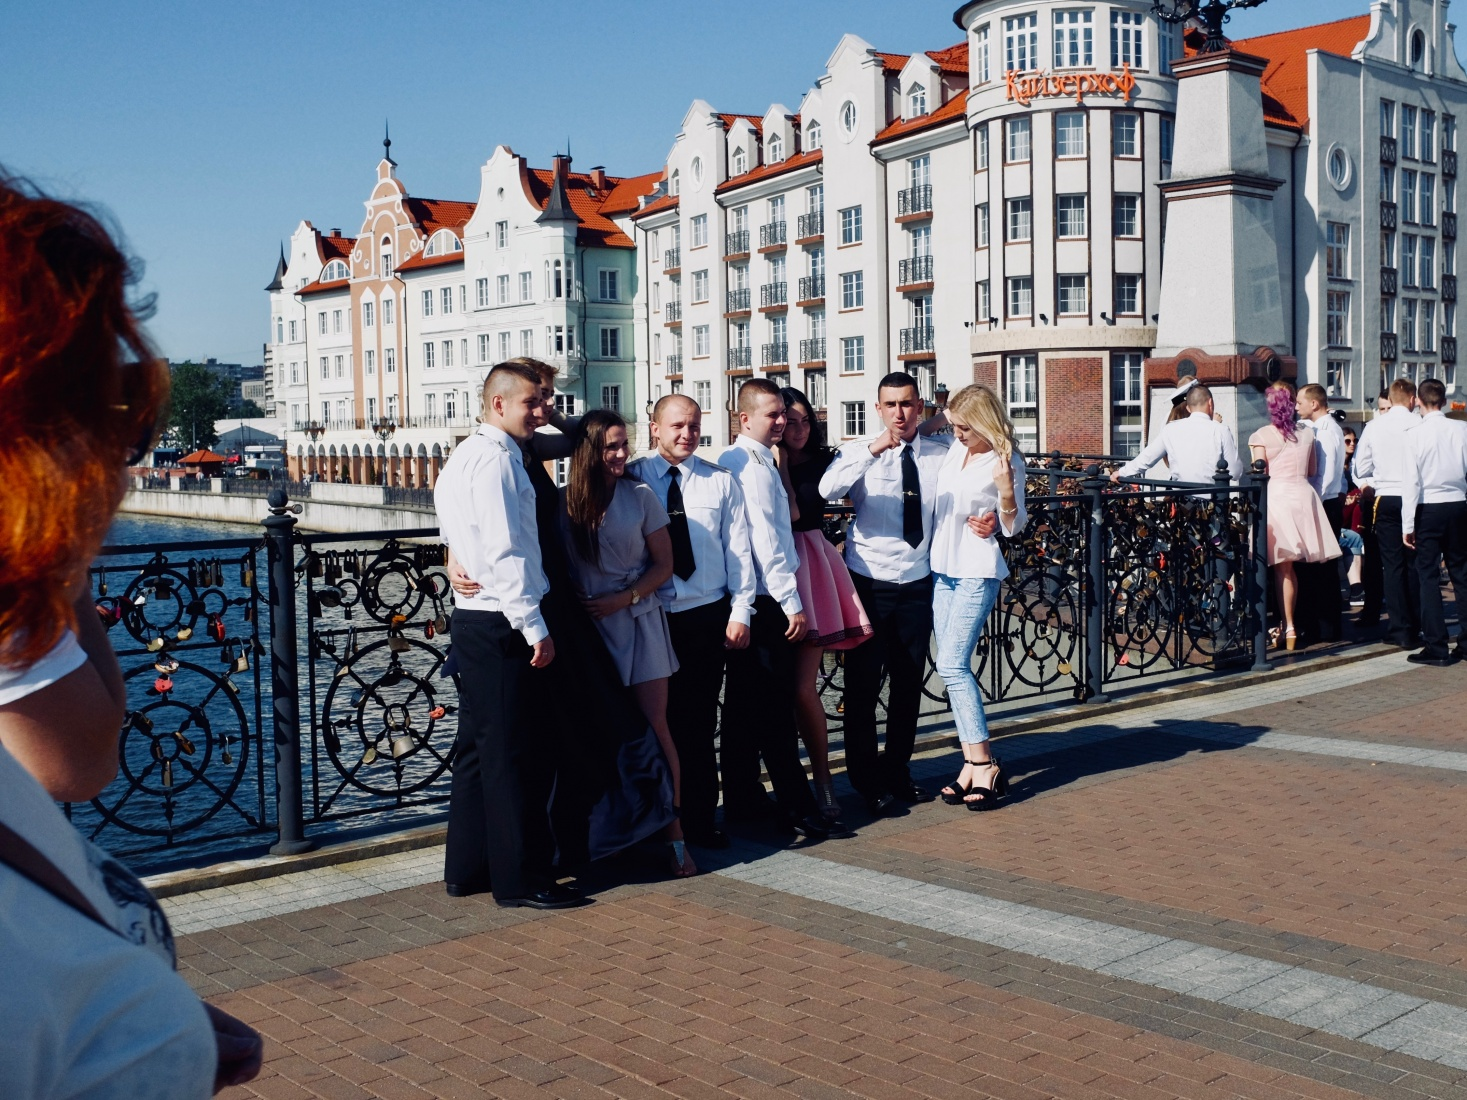 Russian sailors pose on a bridge in Fish Village in Kaliningrad, Russia, over the Pregolya River.